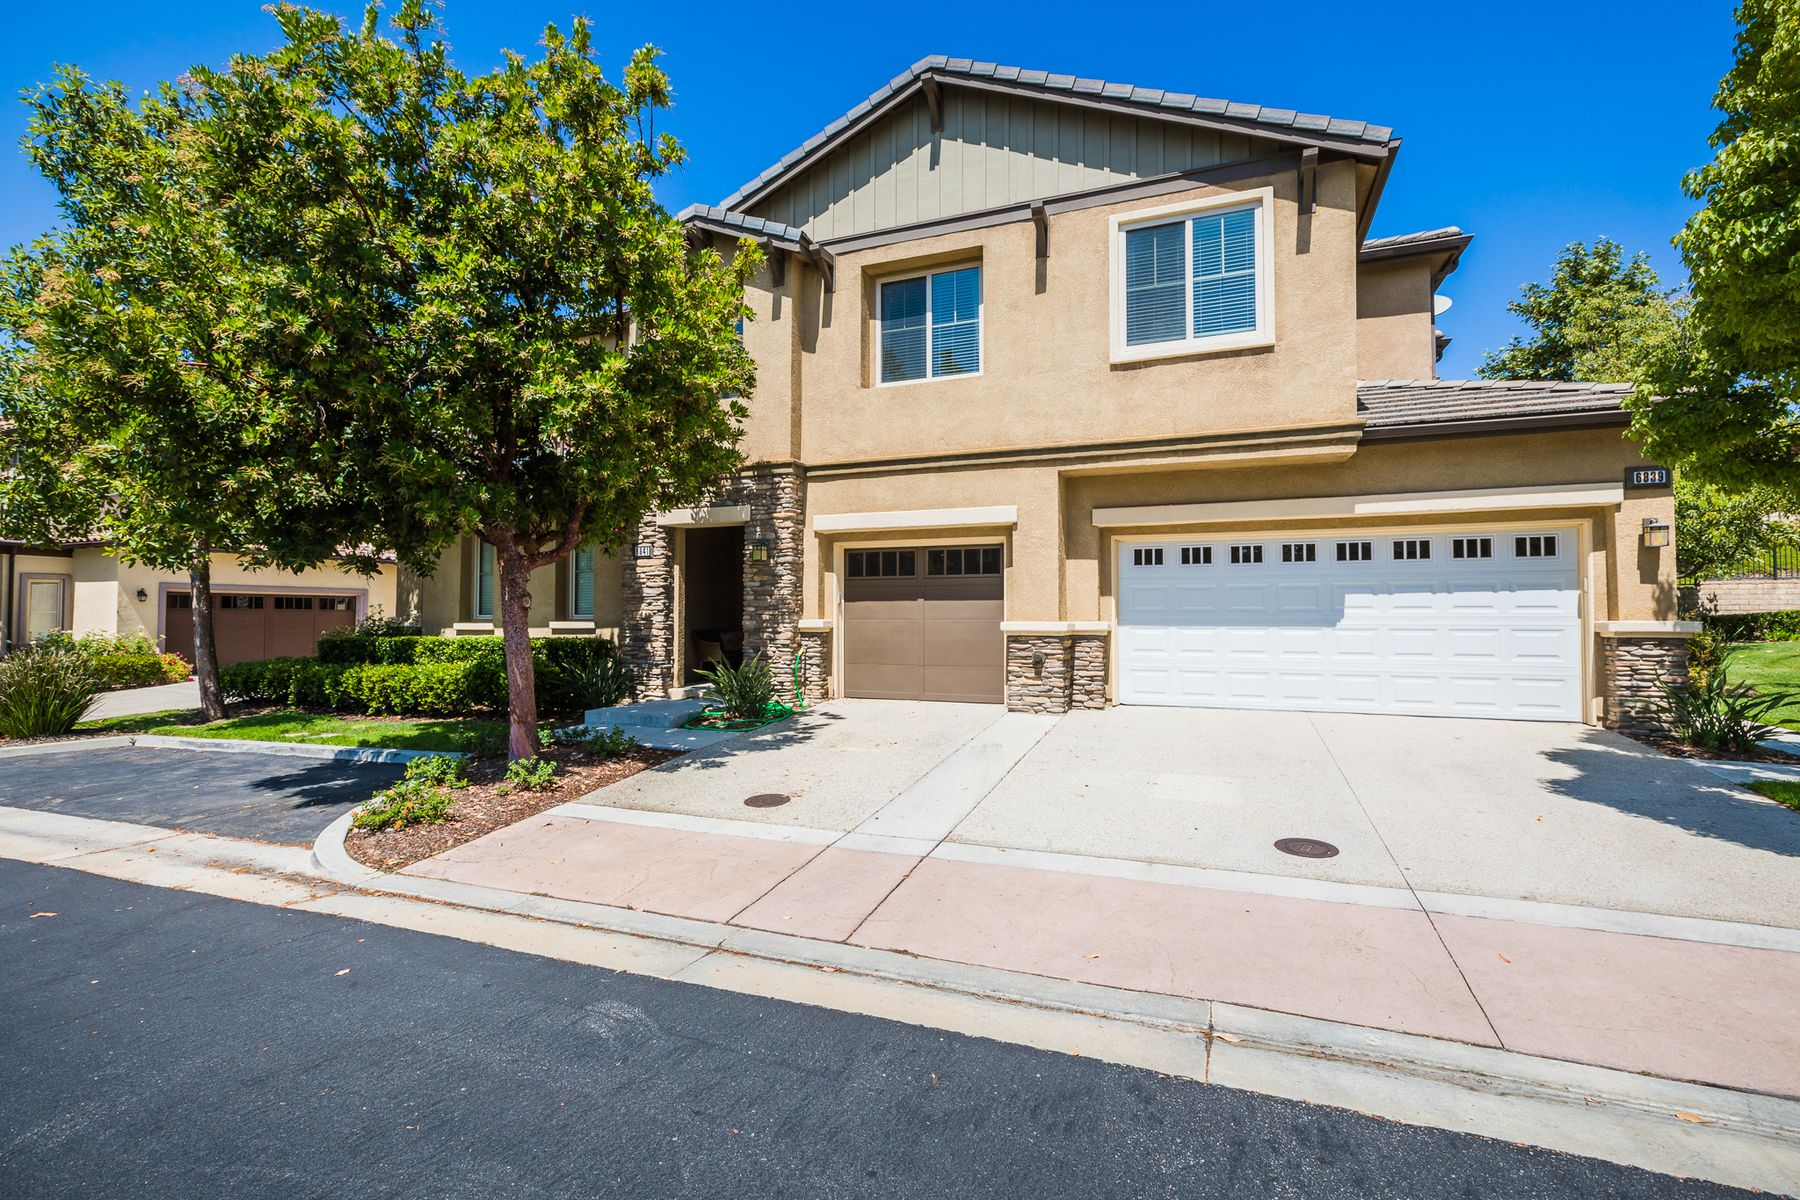 townhouses for Sale at Upgraded, Private Townhome 6841 Sperryville Lane Moorpark, California 93021 United States